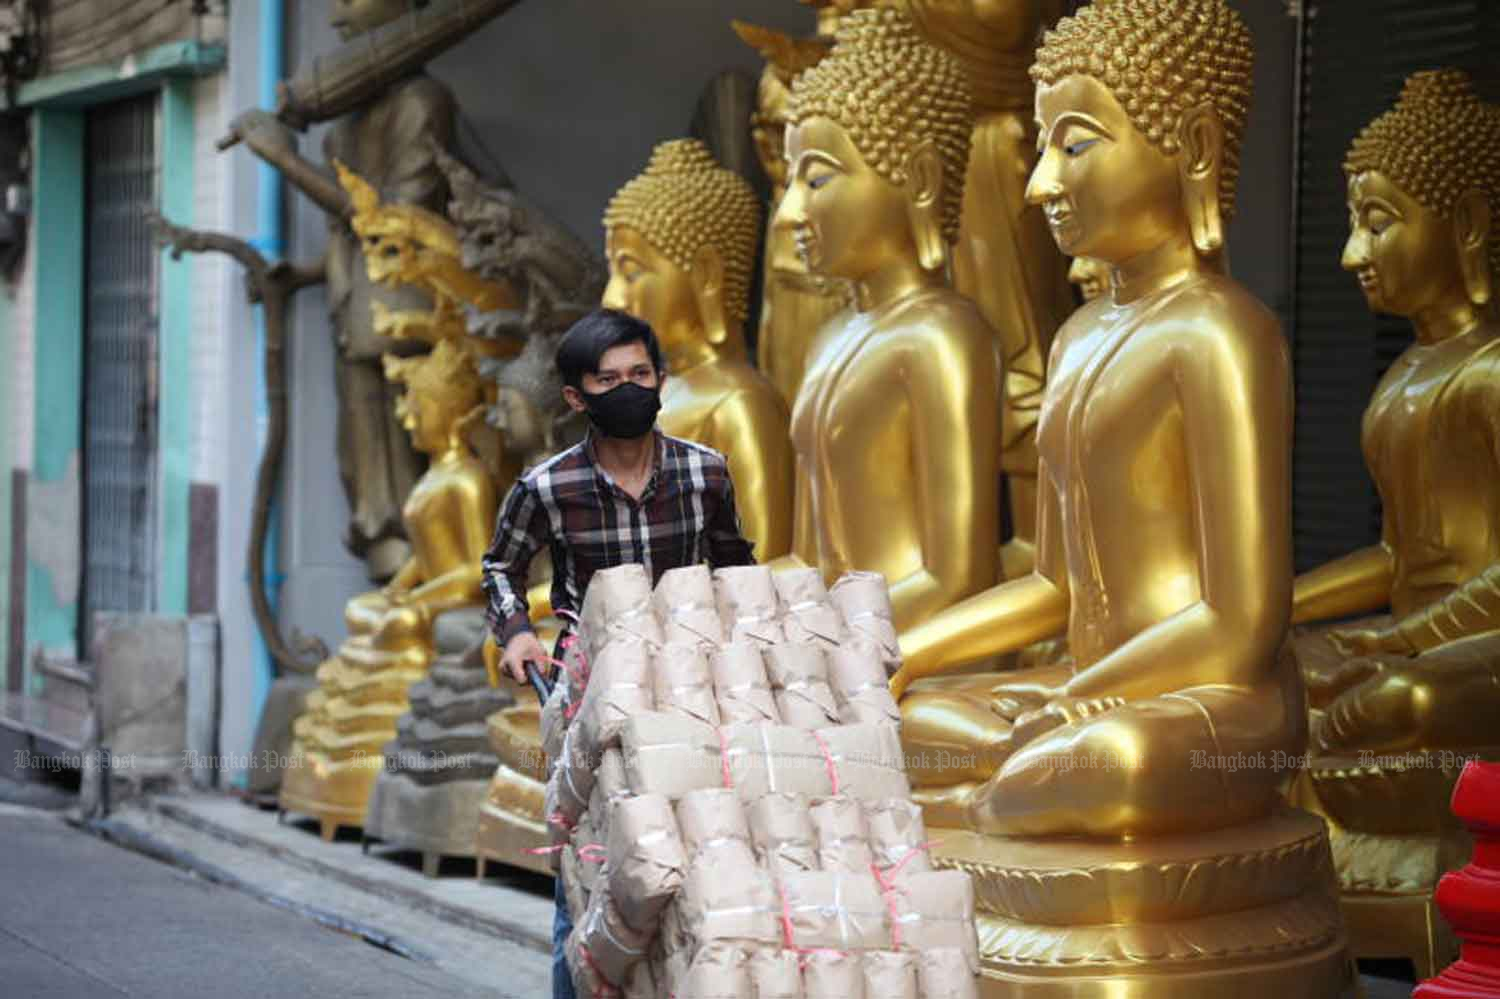 A worker wearing a face mask make a delivery in Phra Nakhon district of Bangkok on Thursday, when 17 new Covid-19 cases were reported among returnees from the Mideast. (Photo: Apichart Jinakul)